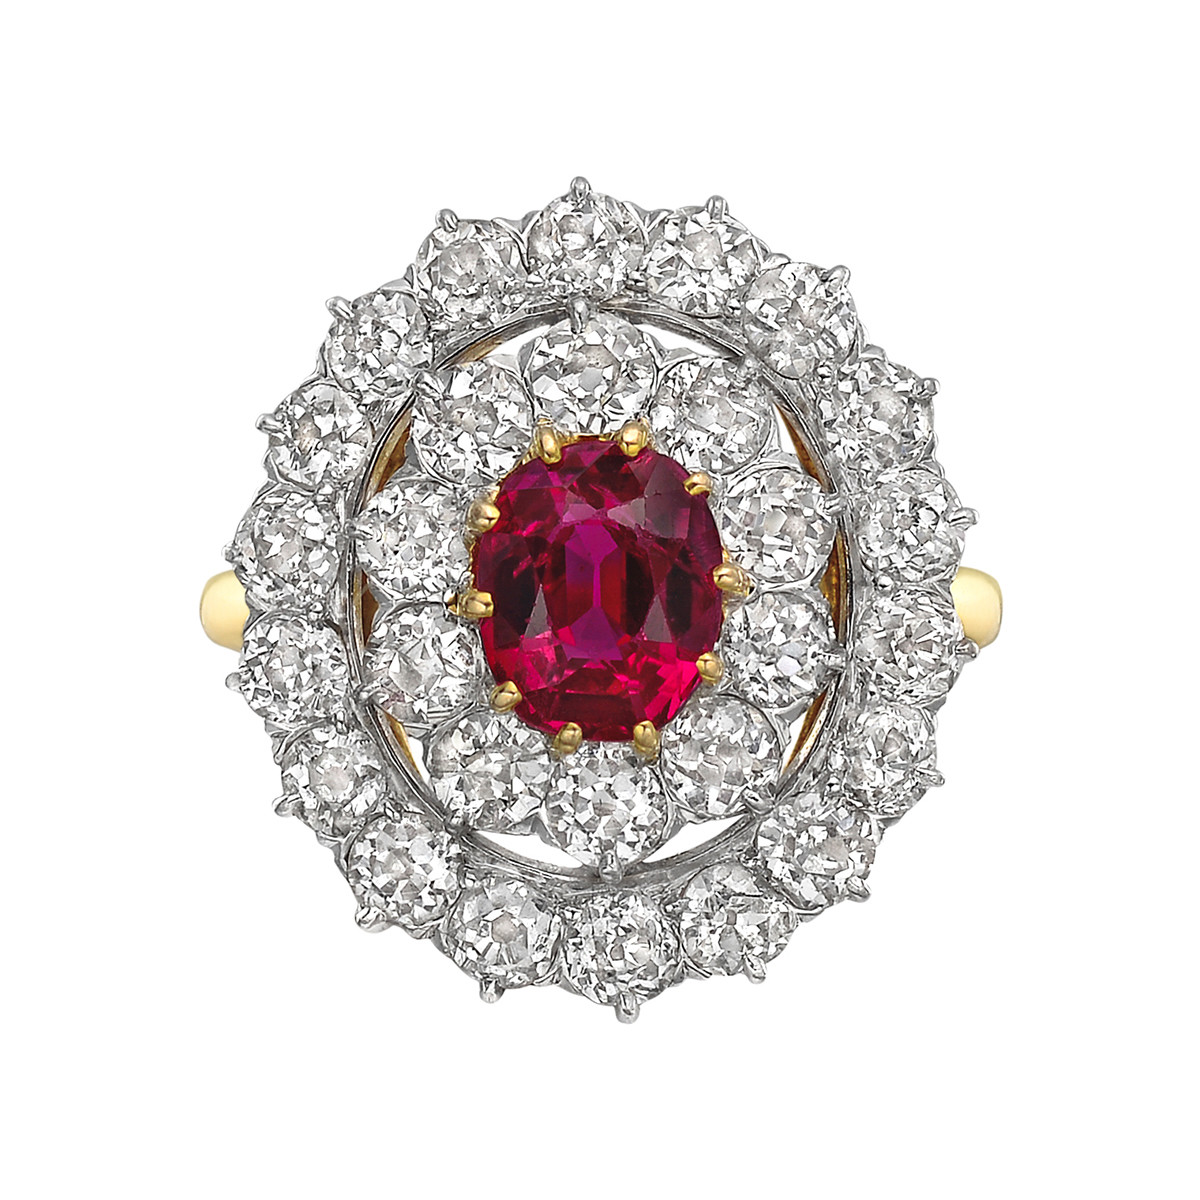 0.97 Carat Burmese Ruby & Diamond Ring